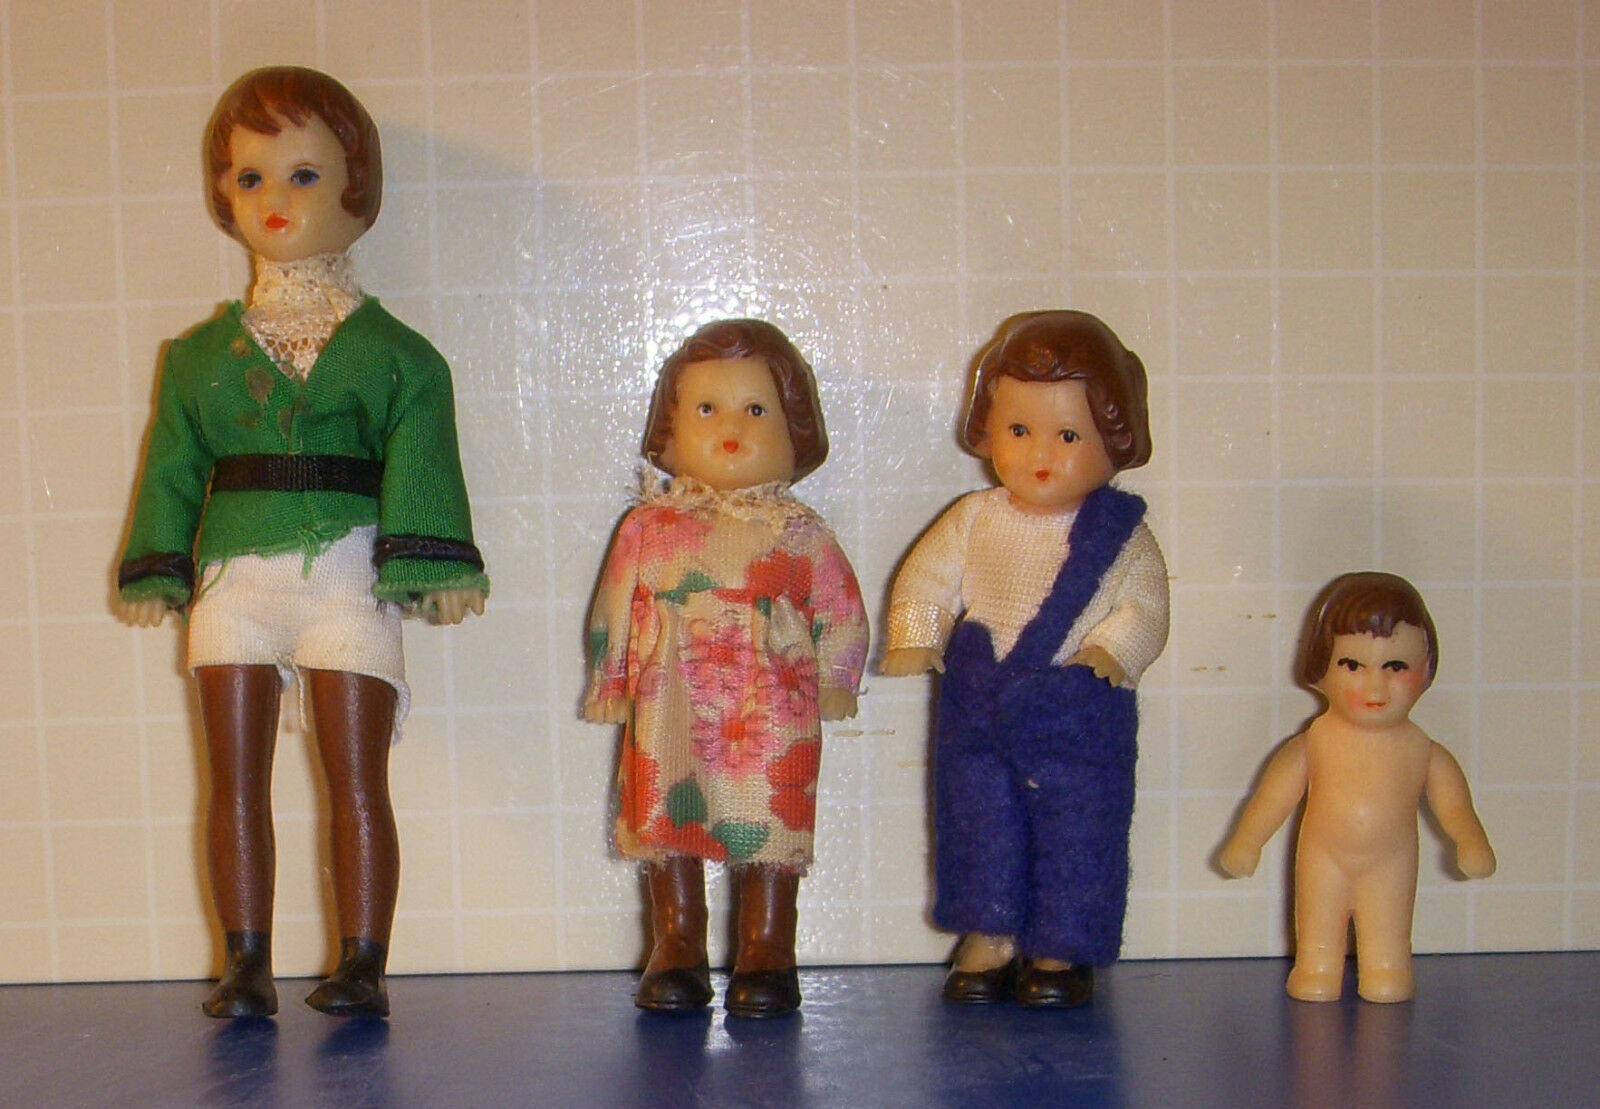 4 Rubber German Jointed Dolls Dollhouse 2 to 5 Inches Vintage